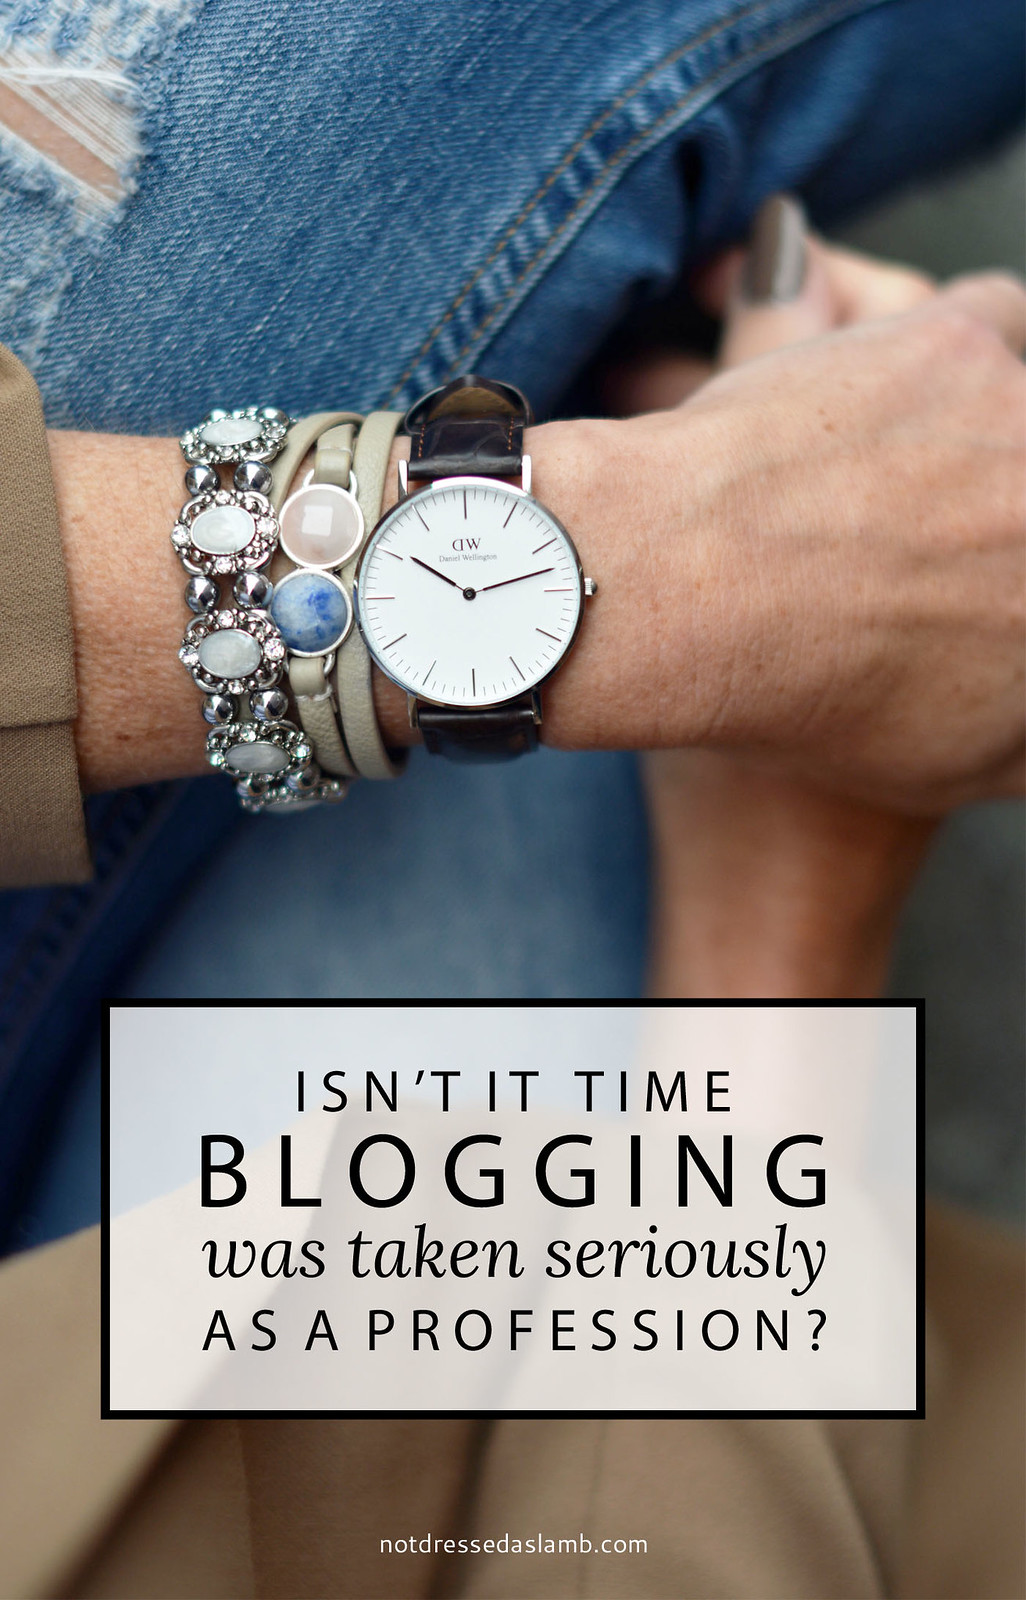 Isn't It Time Blogging Was Taken Seriously as a Profession?